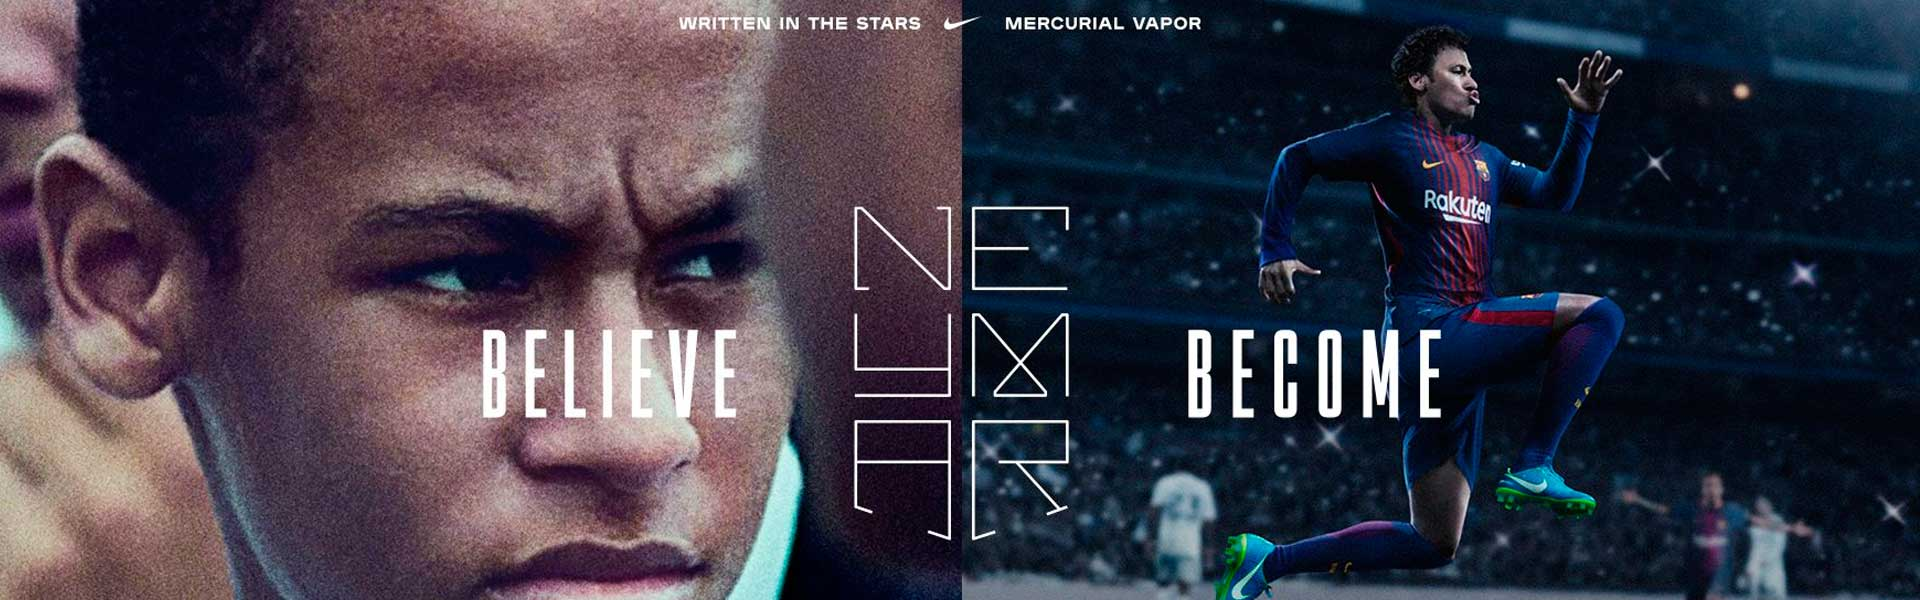 Neymar - Believe, Become